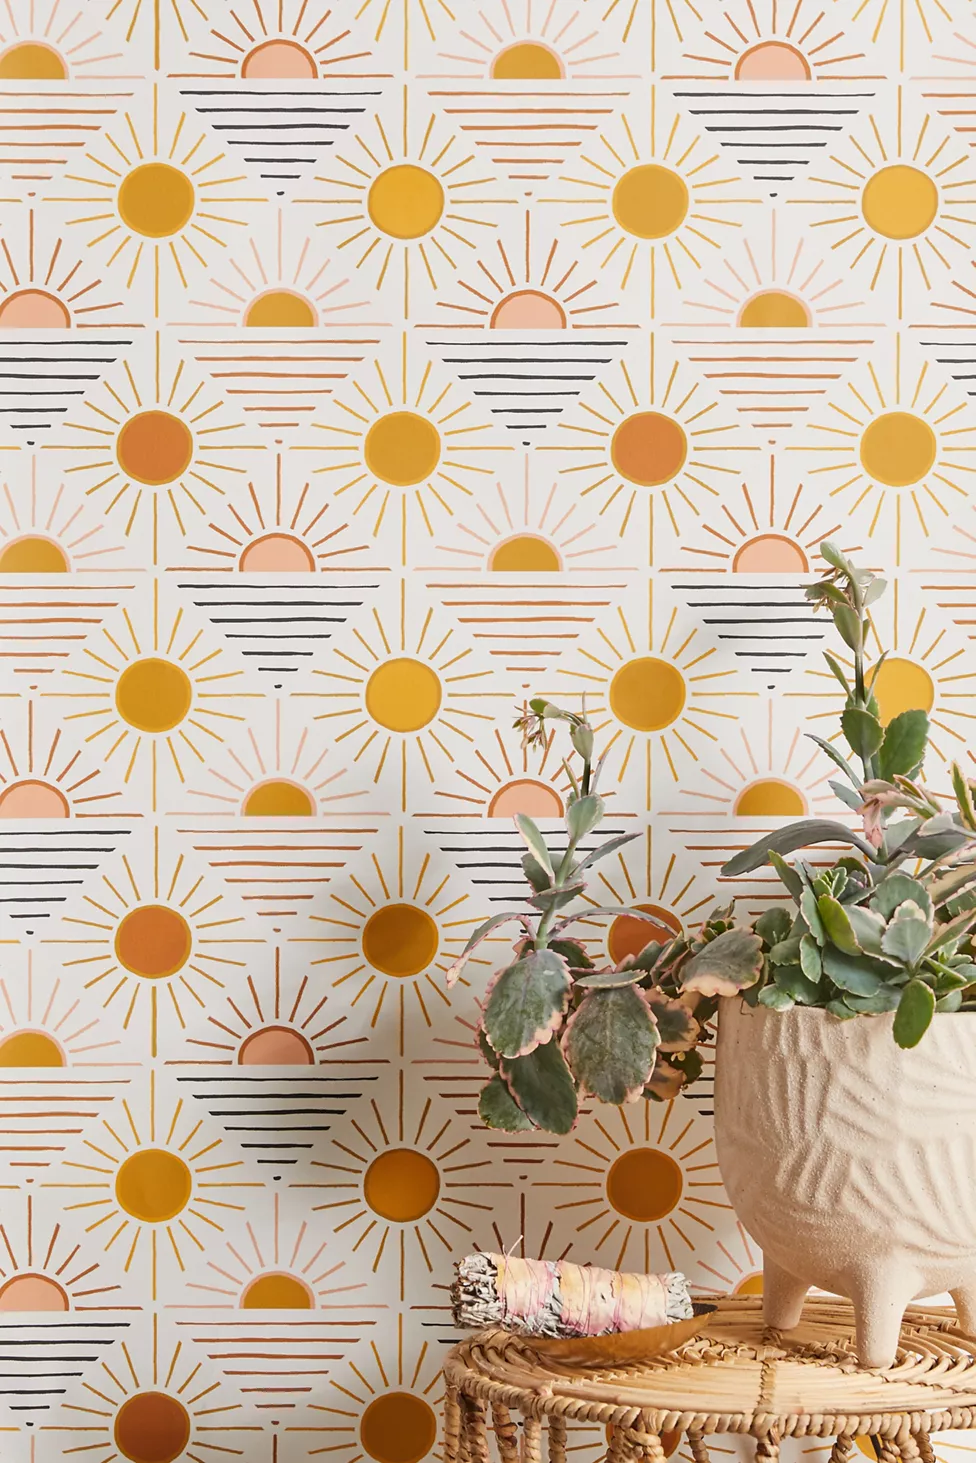 Geo Sun Removable Wallpaper Urban Outfitters Stick On Wallpaper Removable Wallpaper Cheap Home Decor